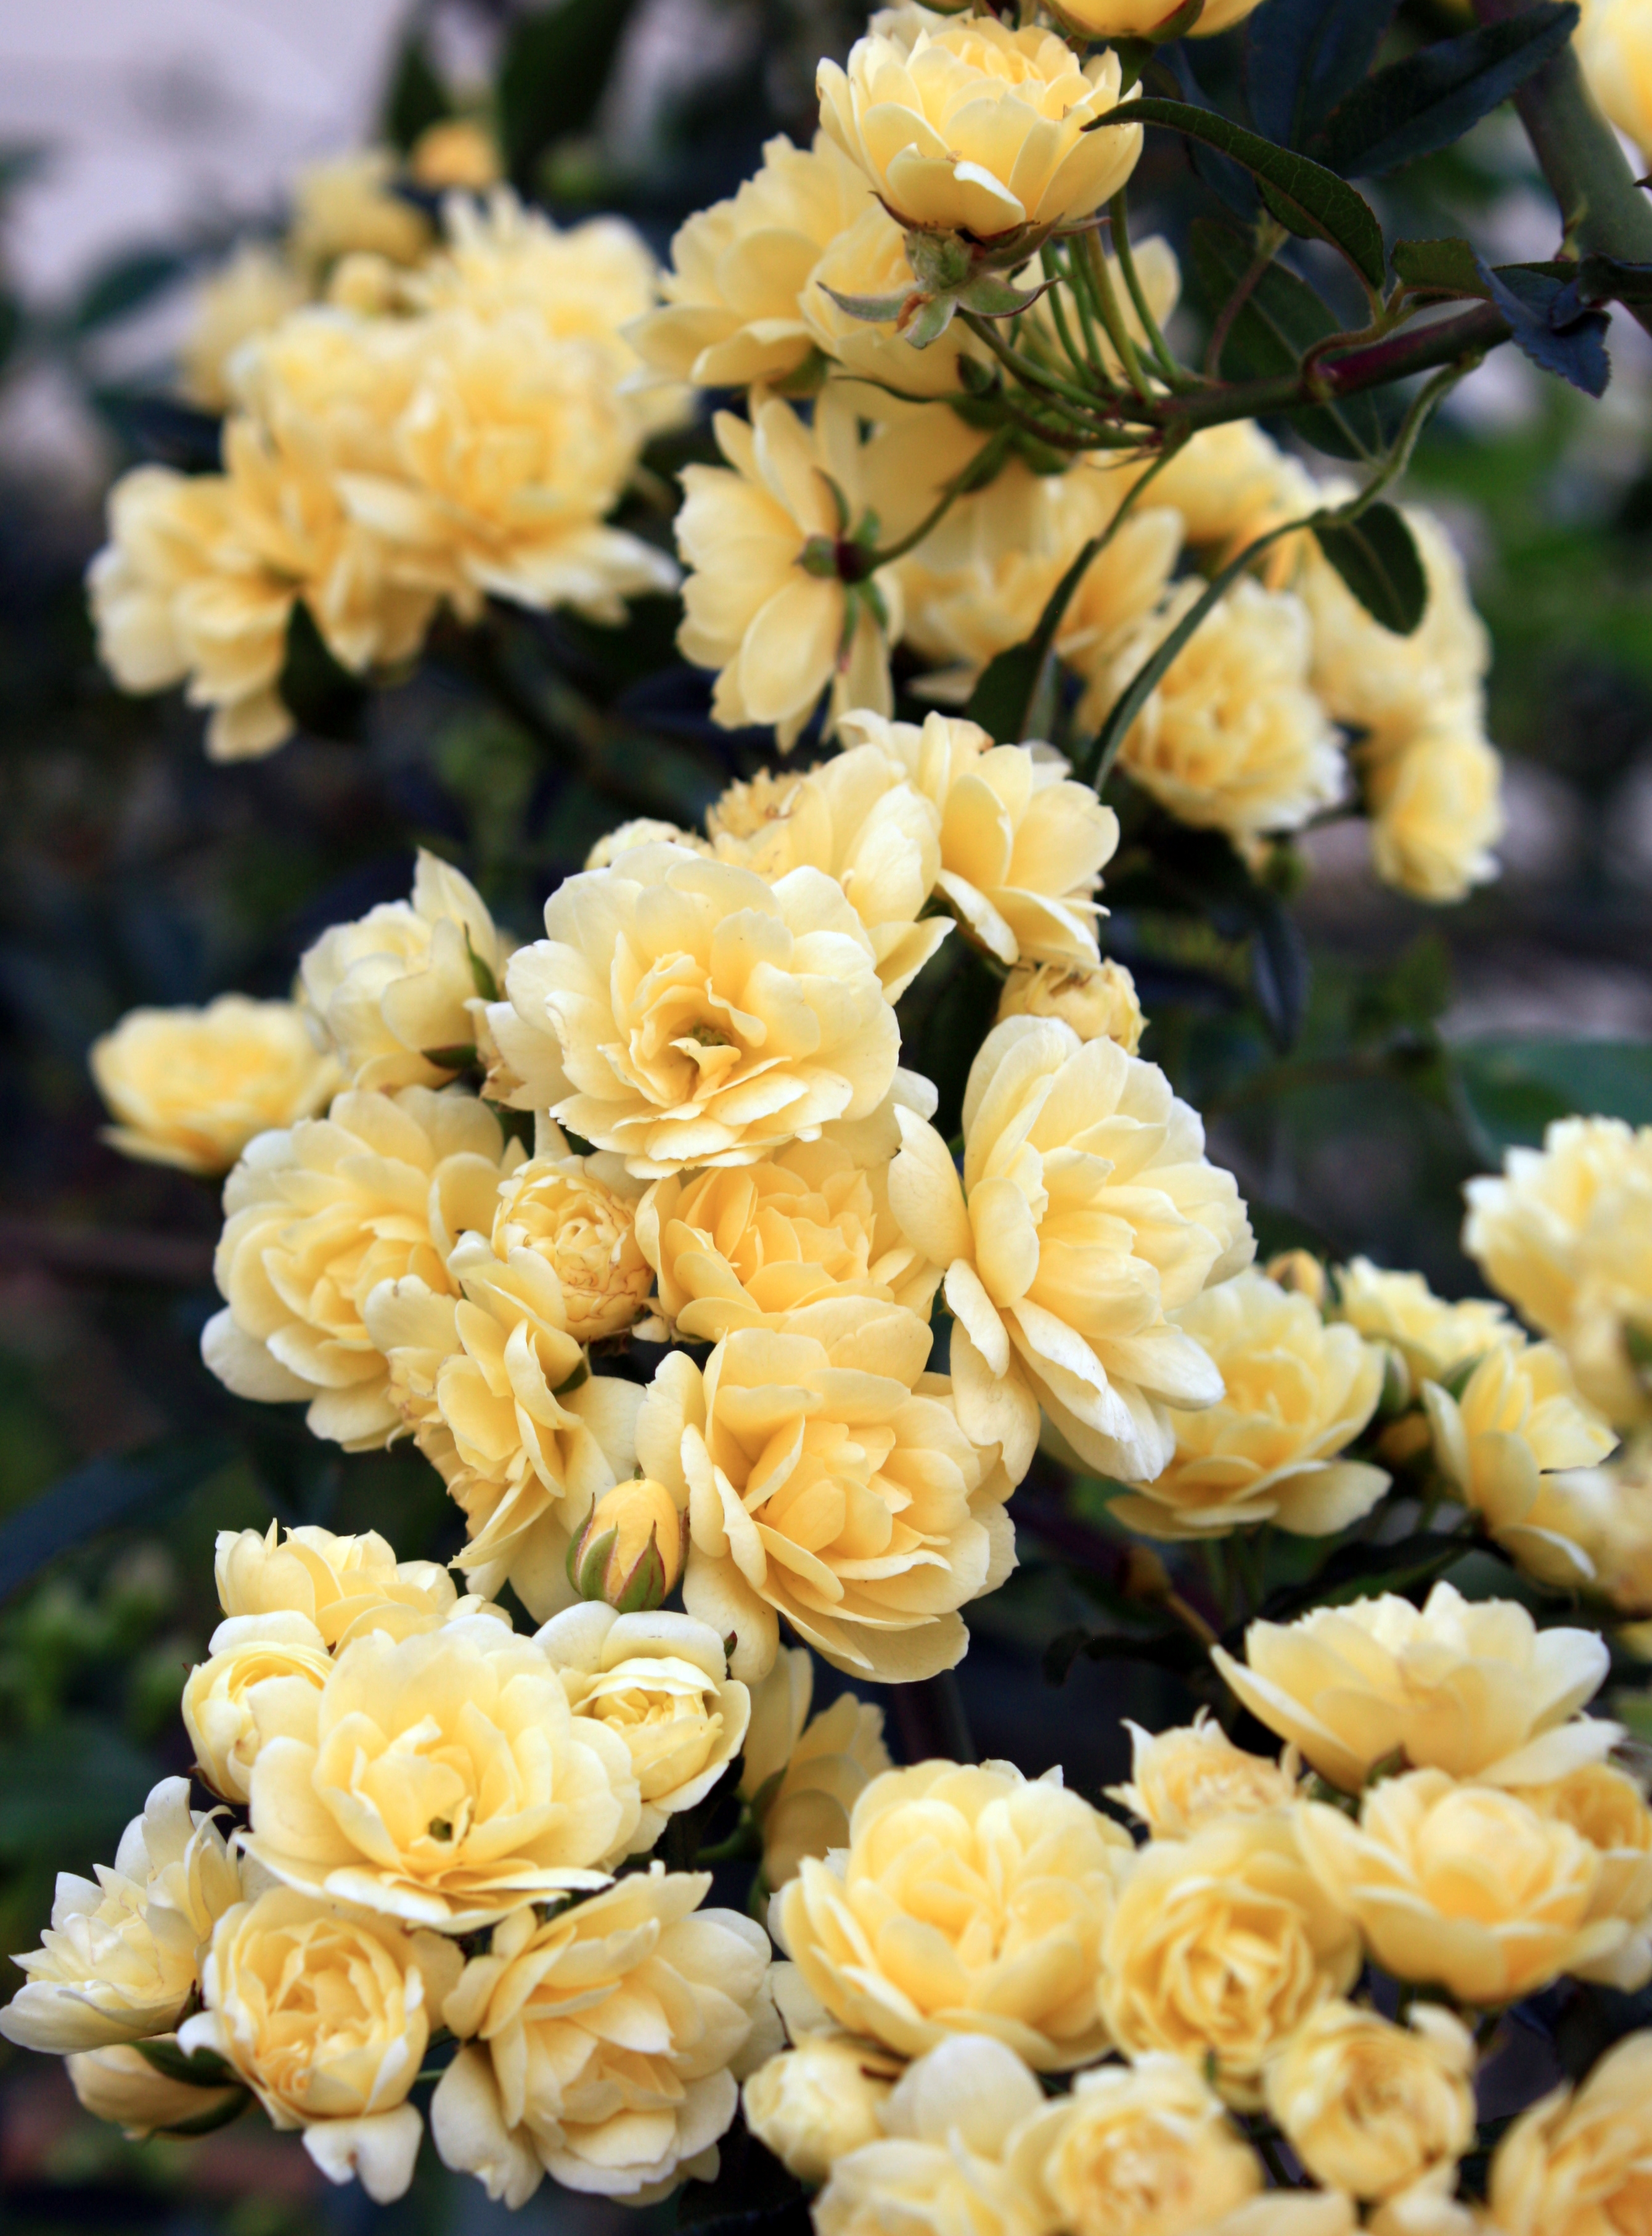 Daily Flower Candy: Rosa banksiae \'Lutea\' – The Frustrated Gardener